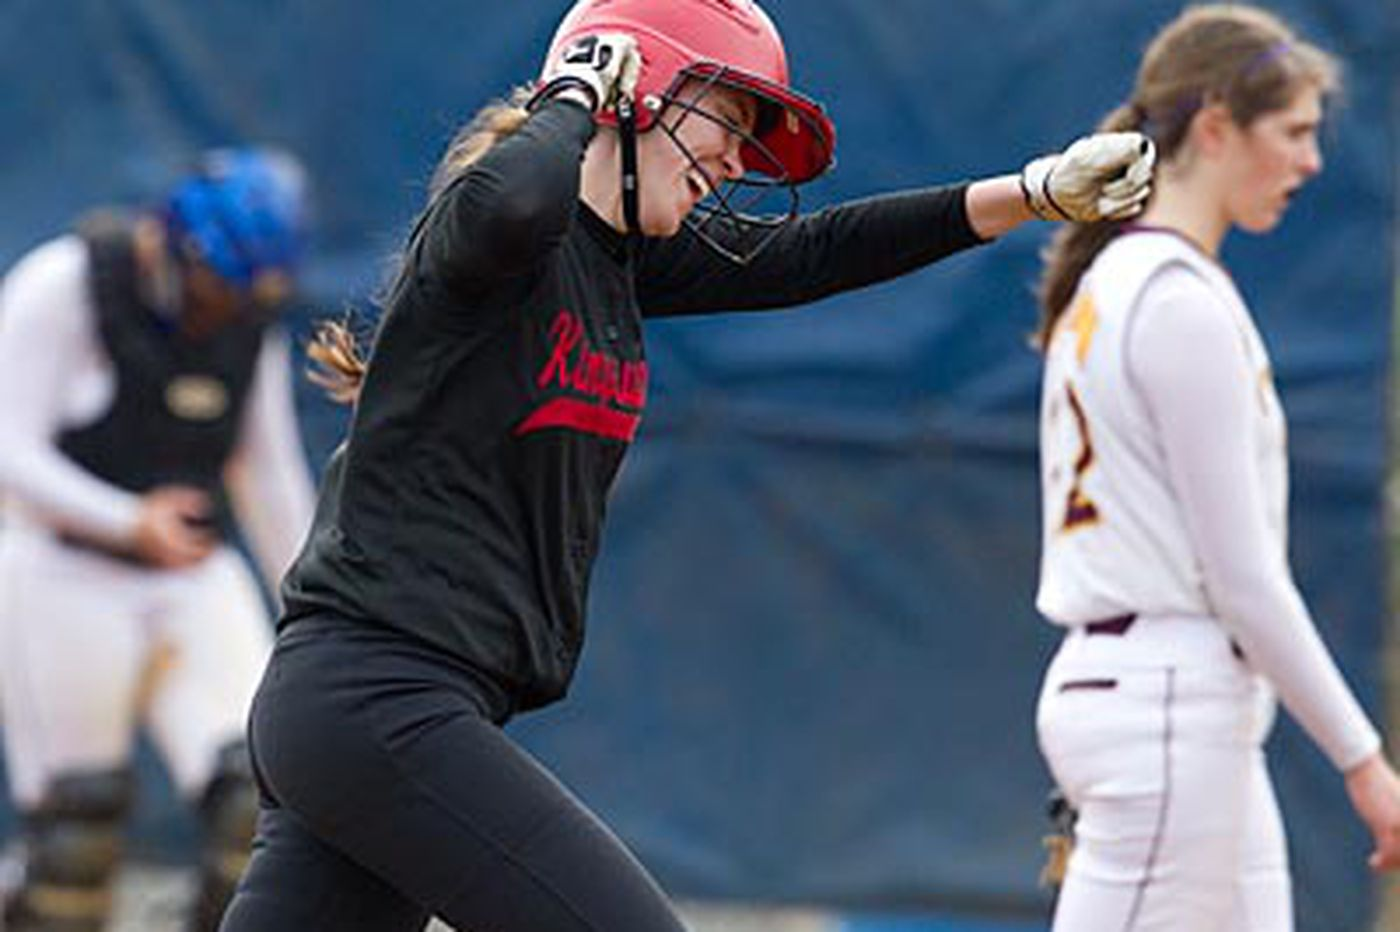 Thursday's South Jersey roundup: Diana Parker strikes out 16 to lead Delsea to South Group 3 quarterfinals